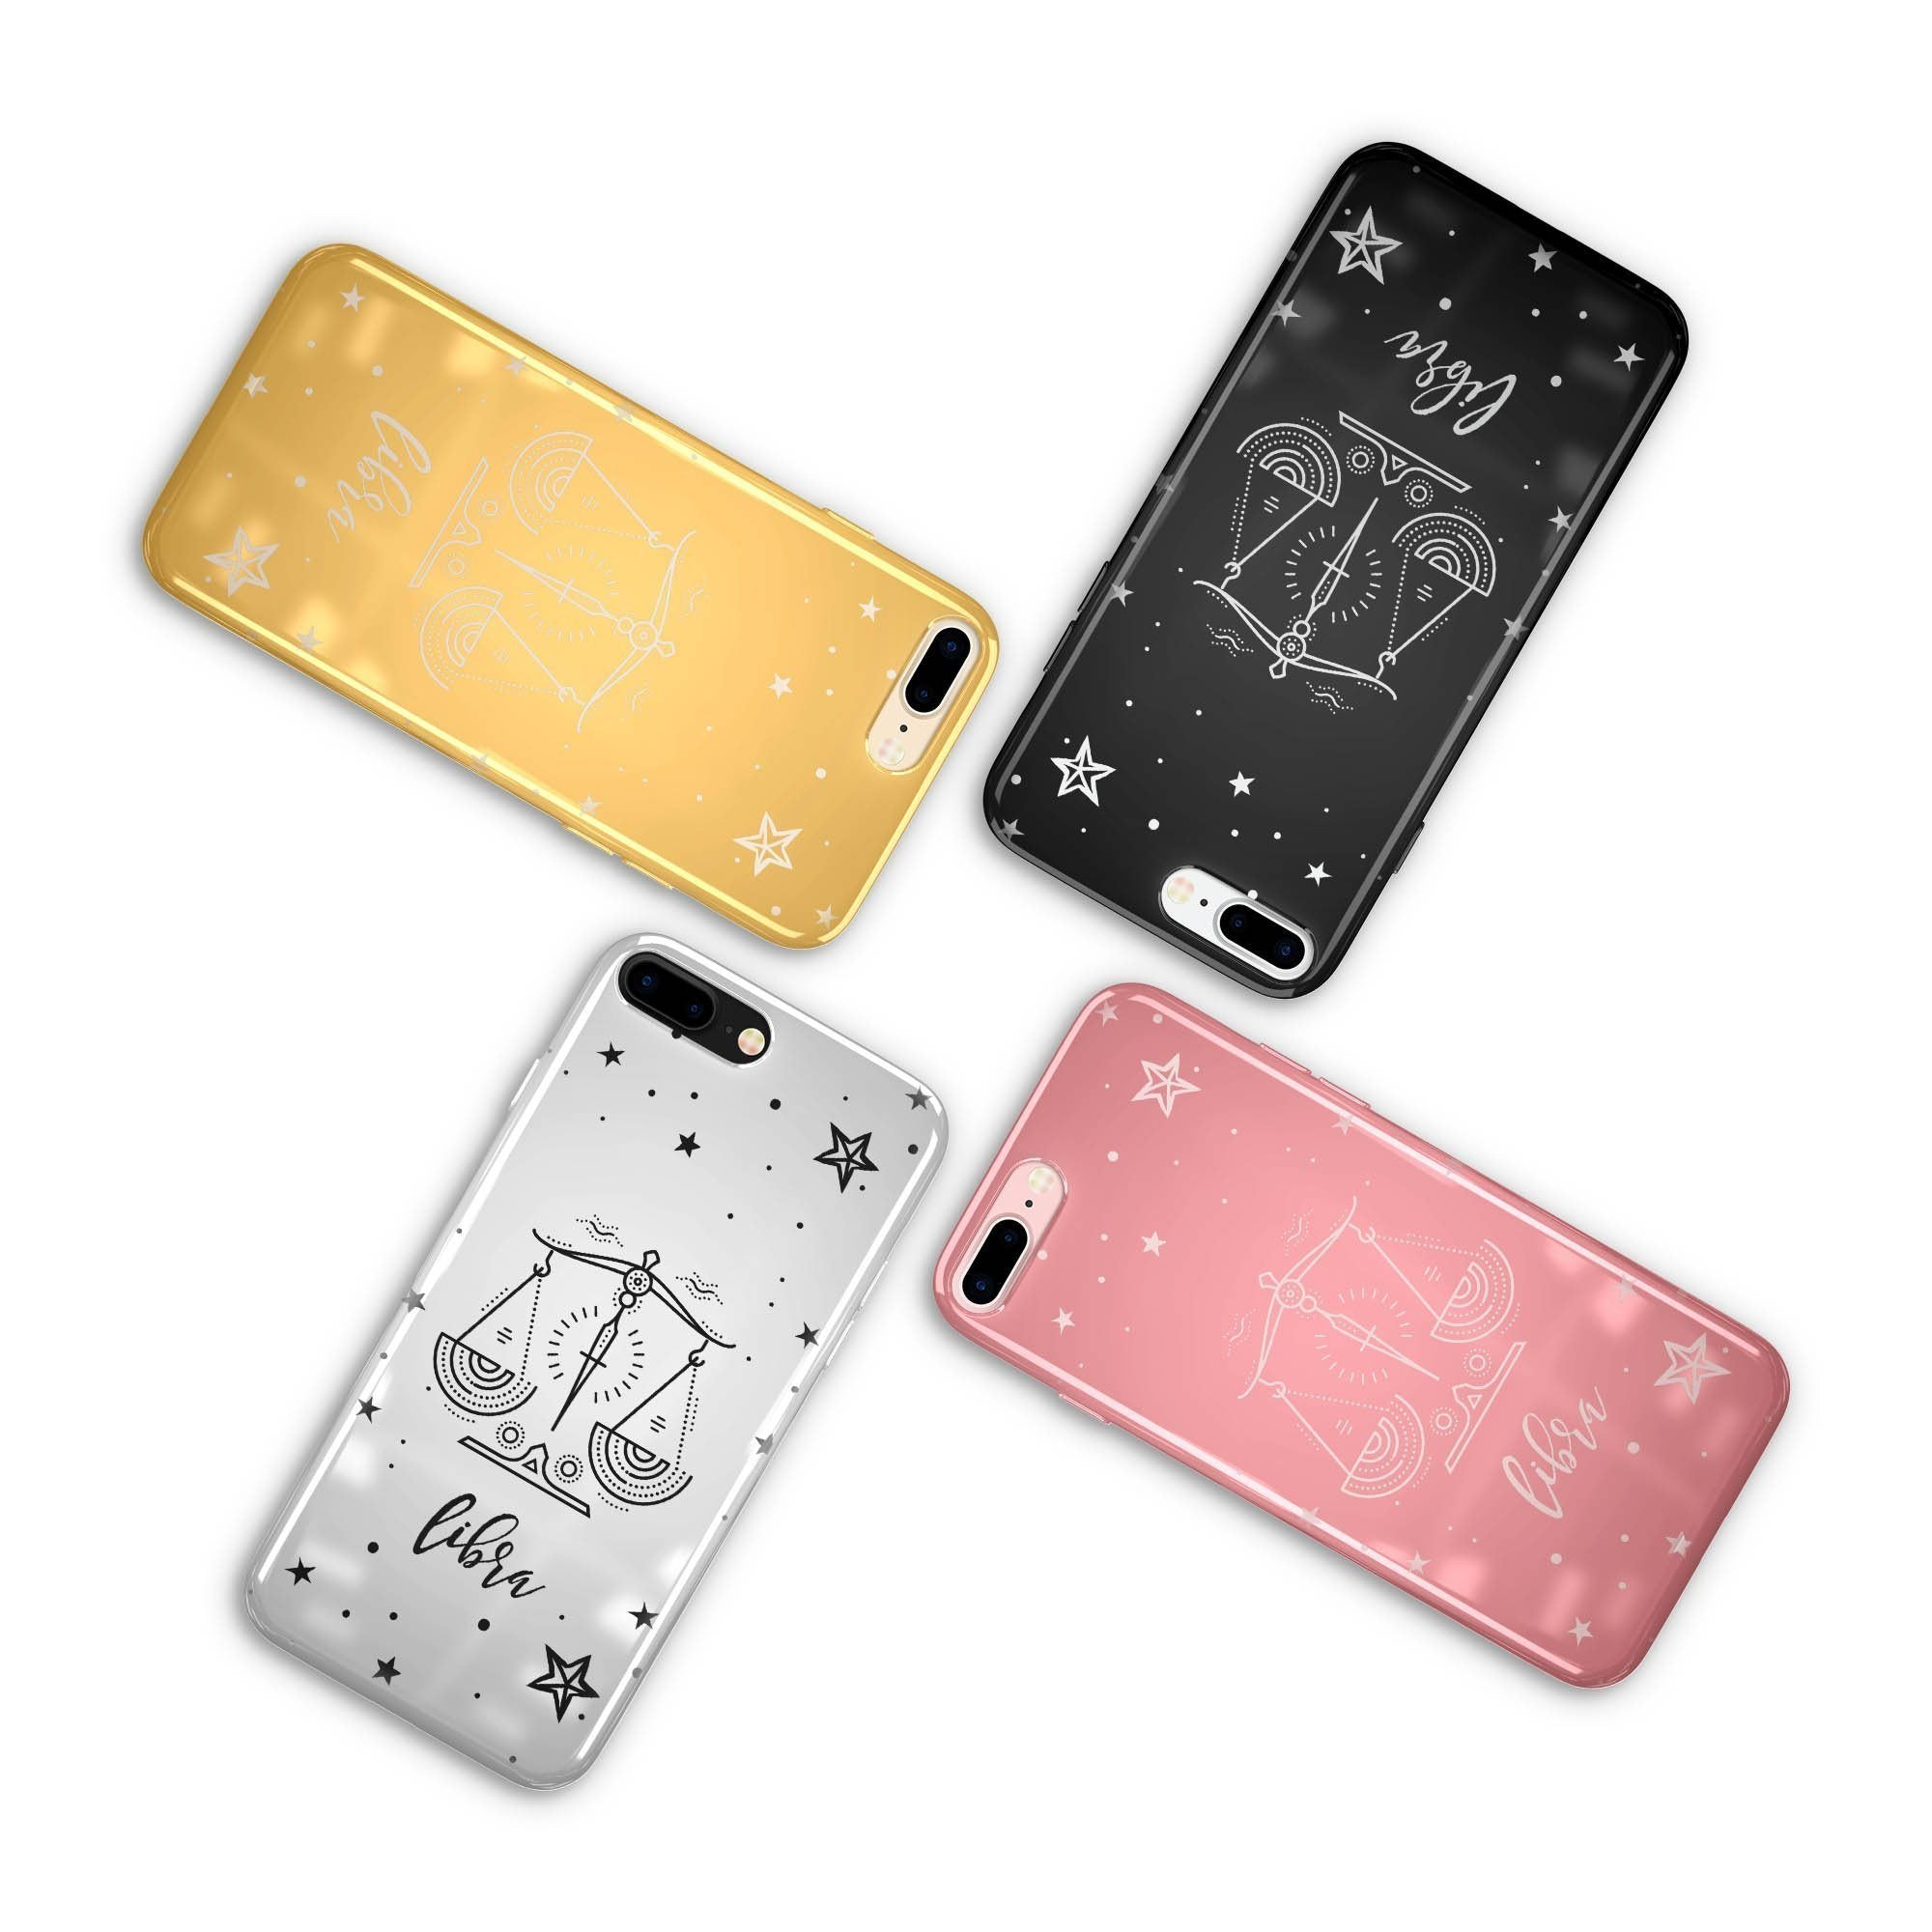 Chrome Shiny TPU Case - Libra